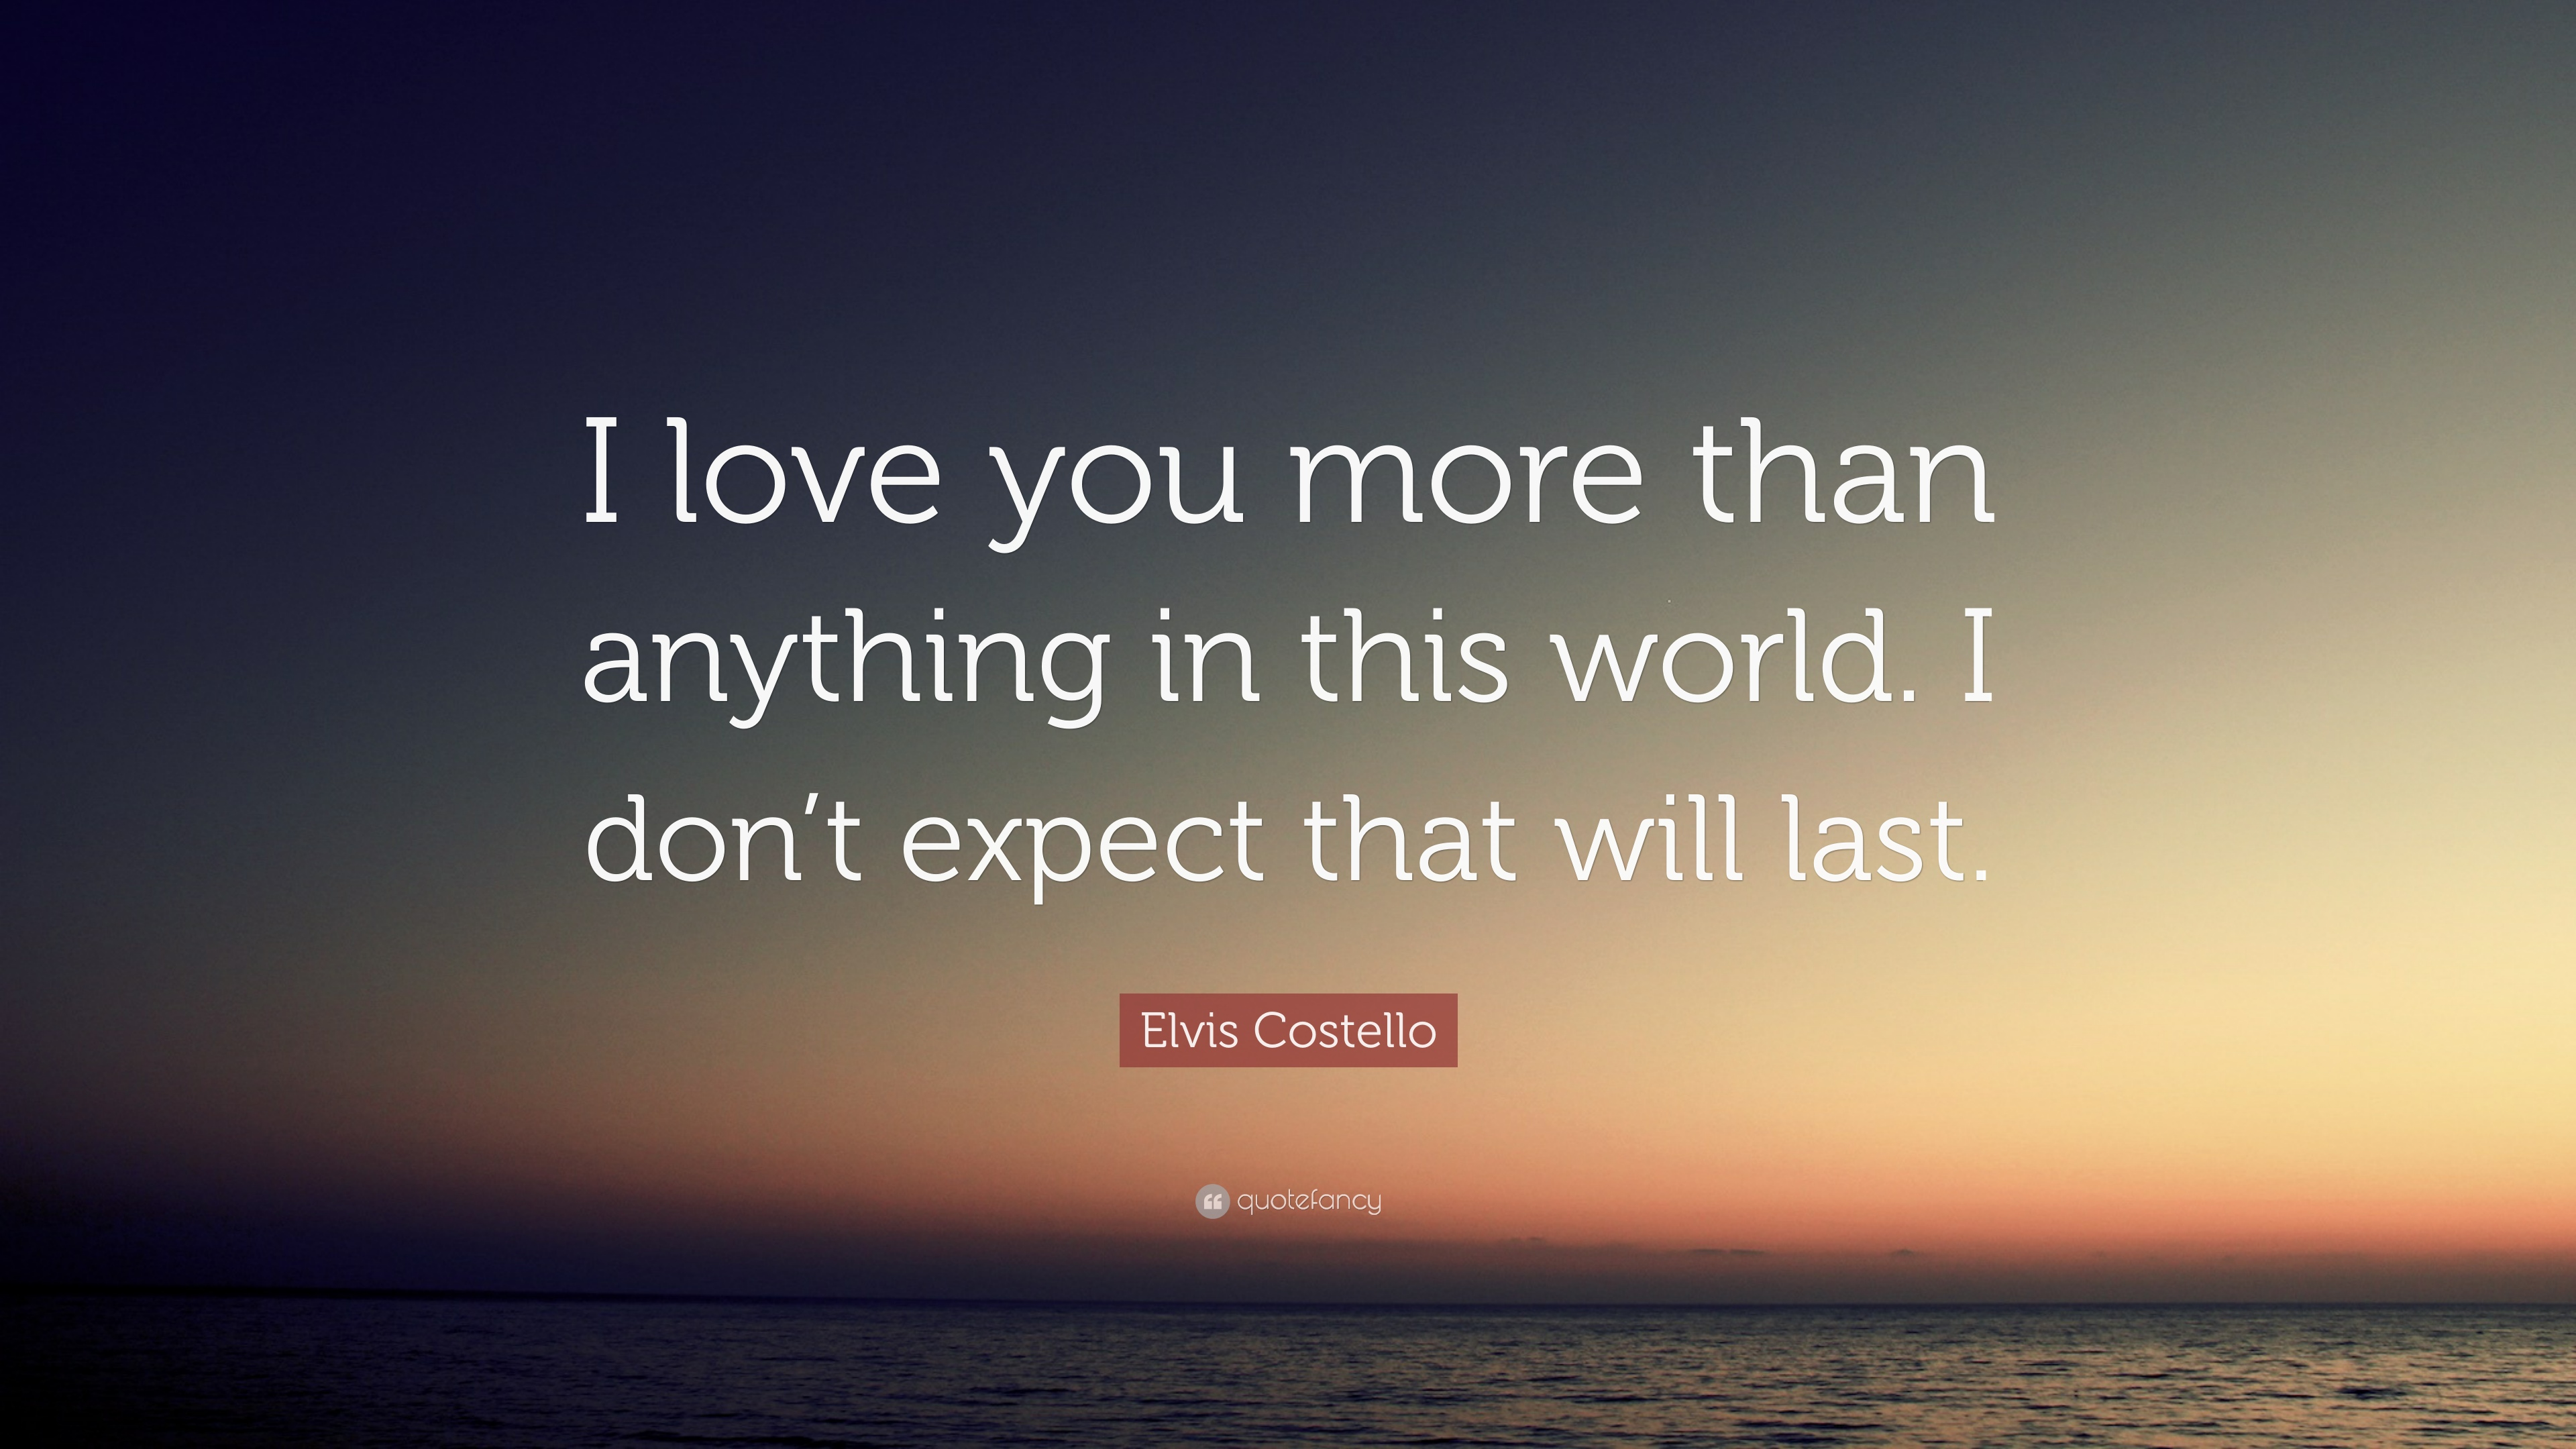 Elvis Costello Quote I Love You More Than Anything In This World I Don T Expect That Will Last 10 Wallpapers Quotefancy